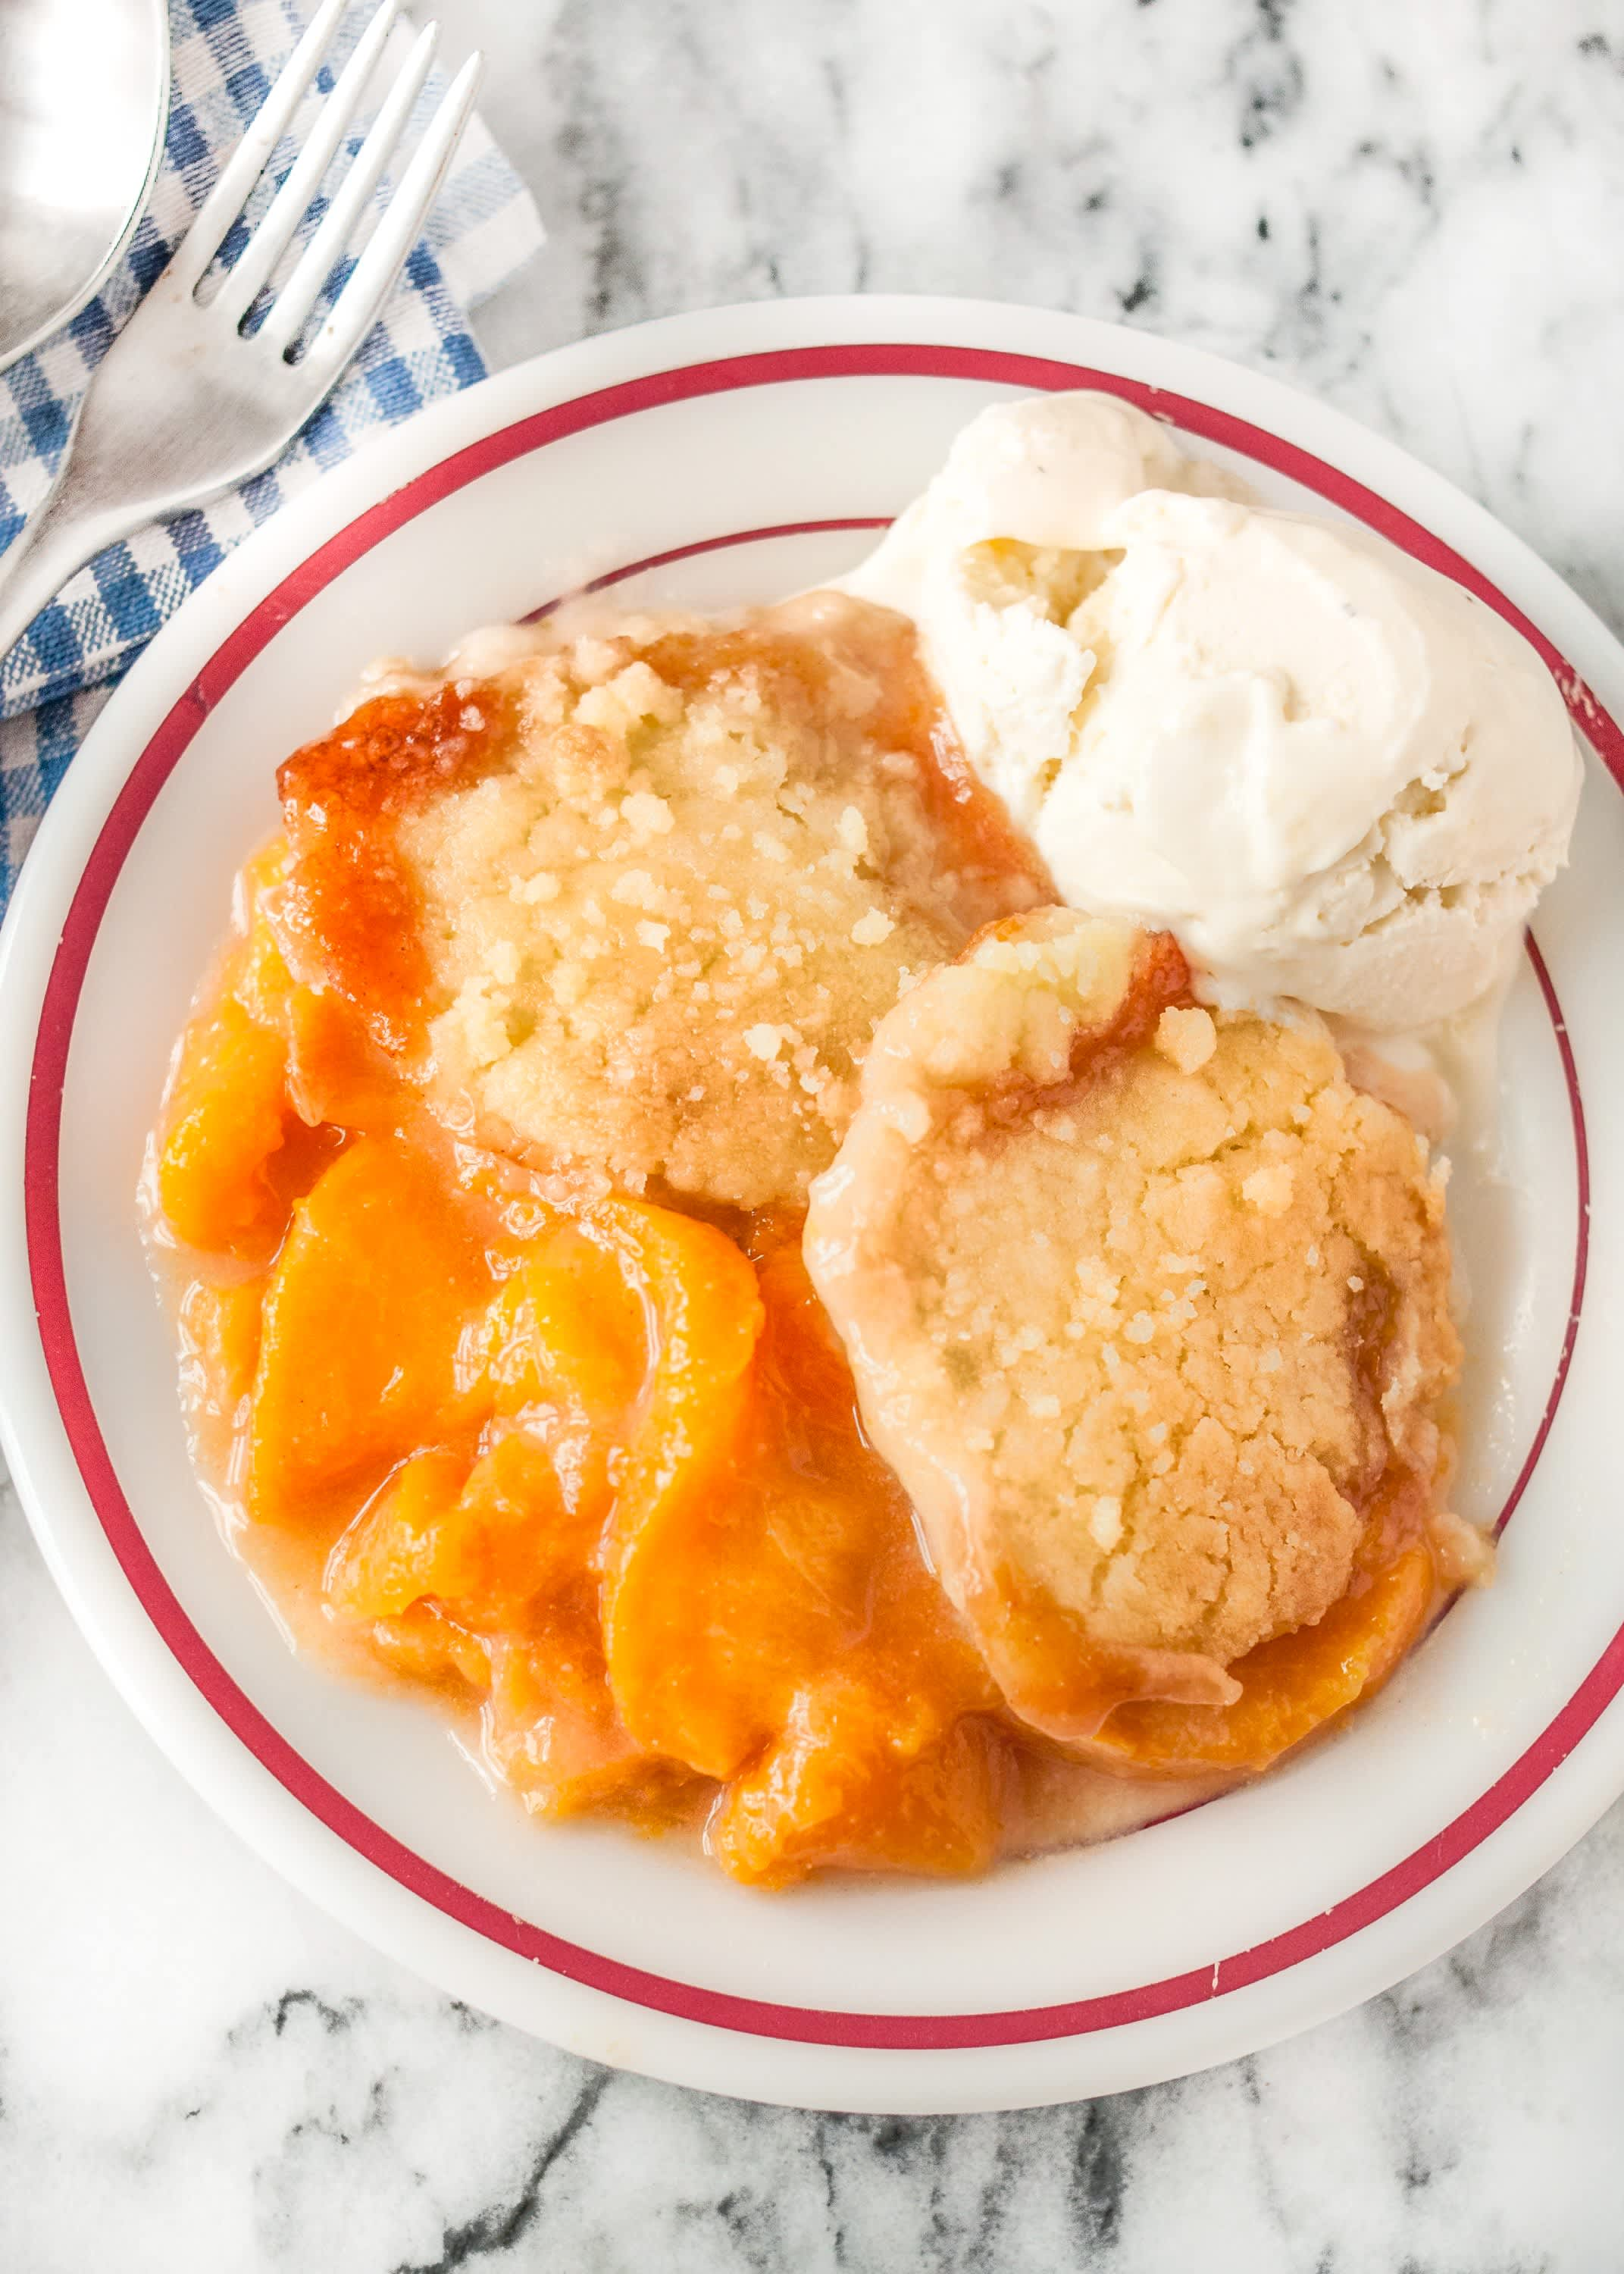 How To Make Southern-Style Fruit Cobbler with Any Fruit